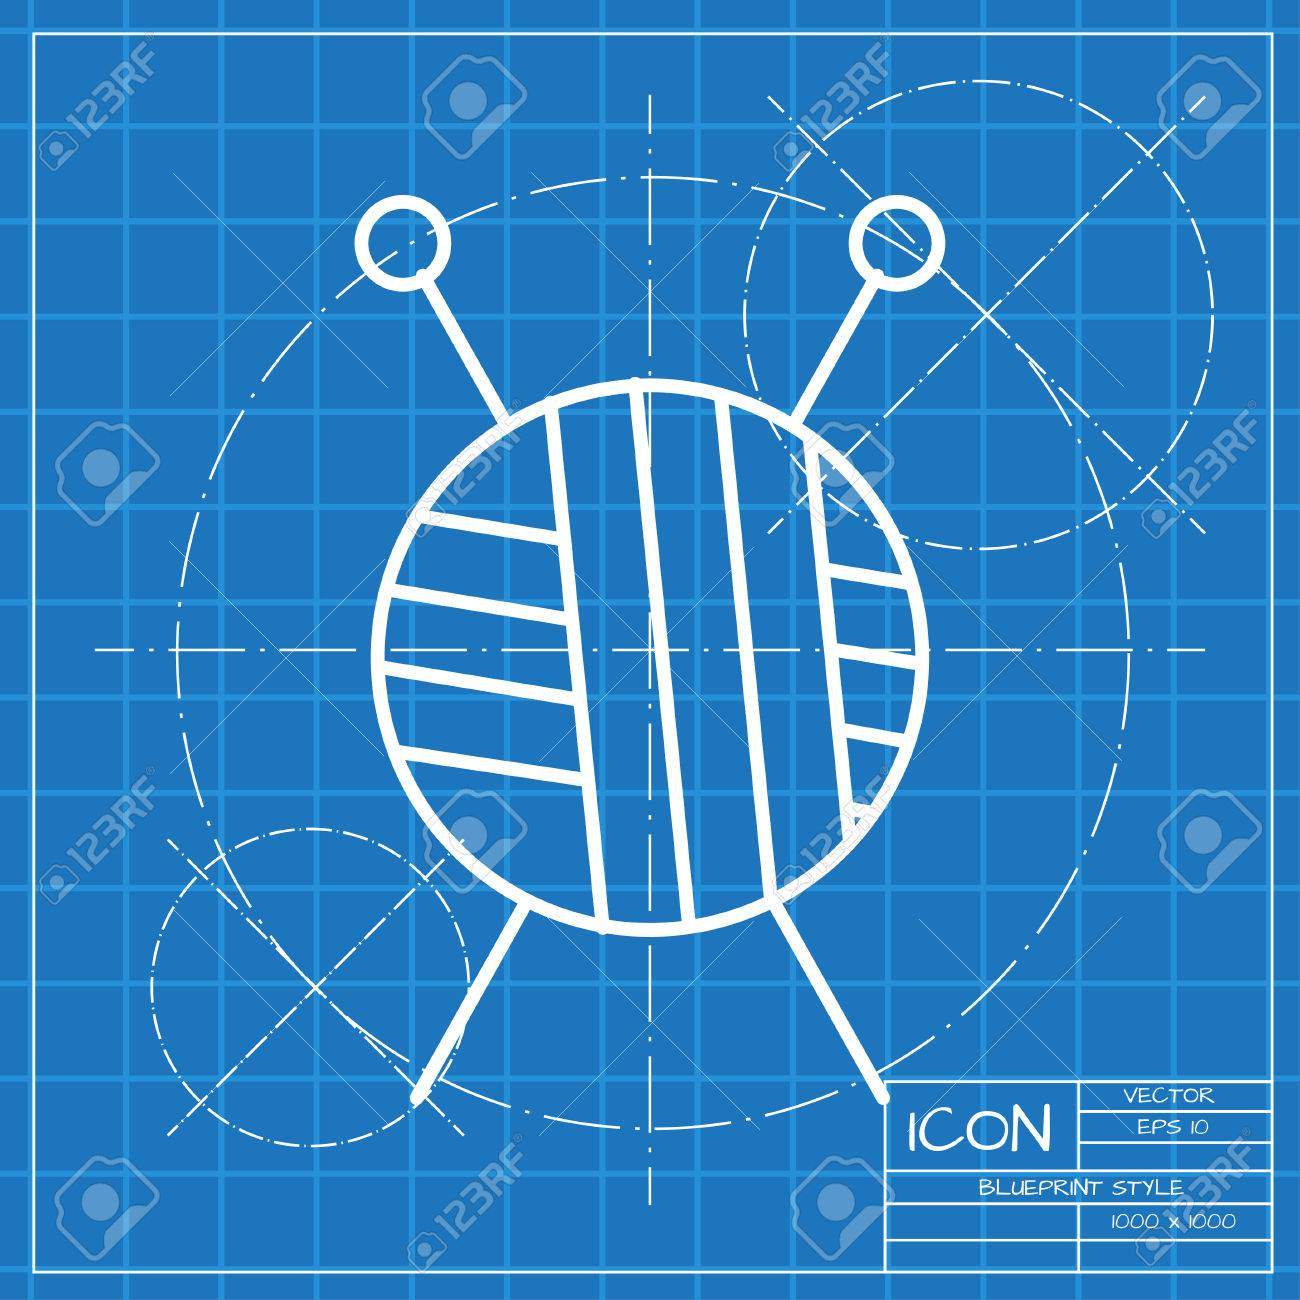 Vector classic blueprint of tailor ravel ball of yarn for knitting stock photo vector classic blueprint of tailor ravel ball of yarn for knitting icon on engineer and architect background malvernweather Image collections